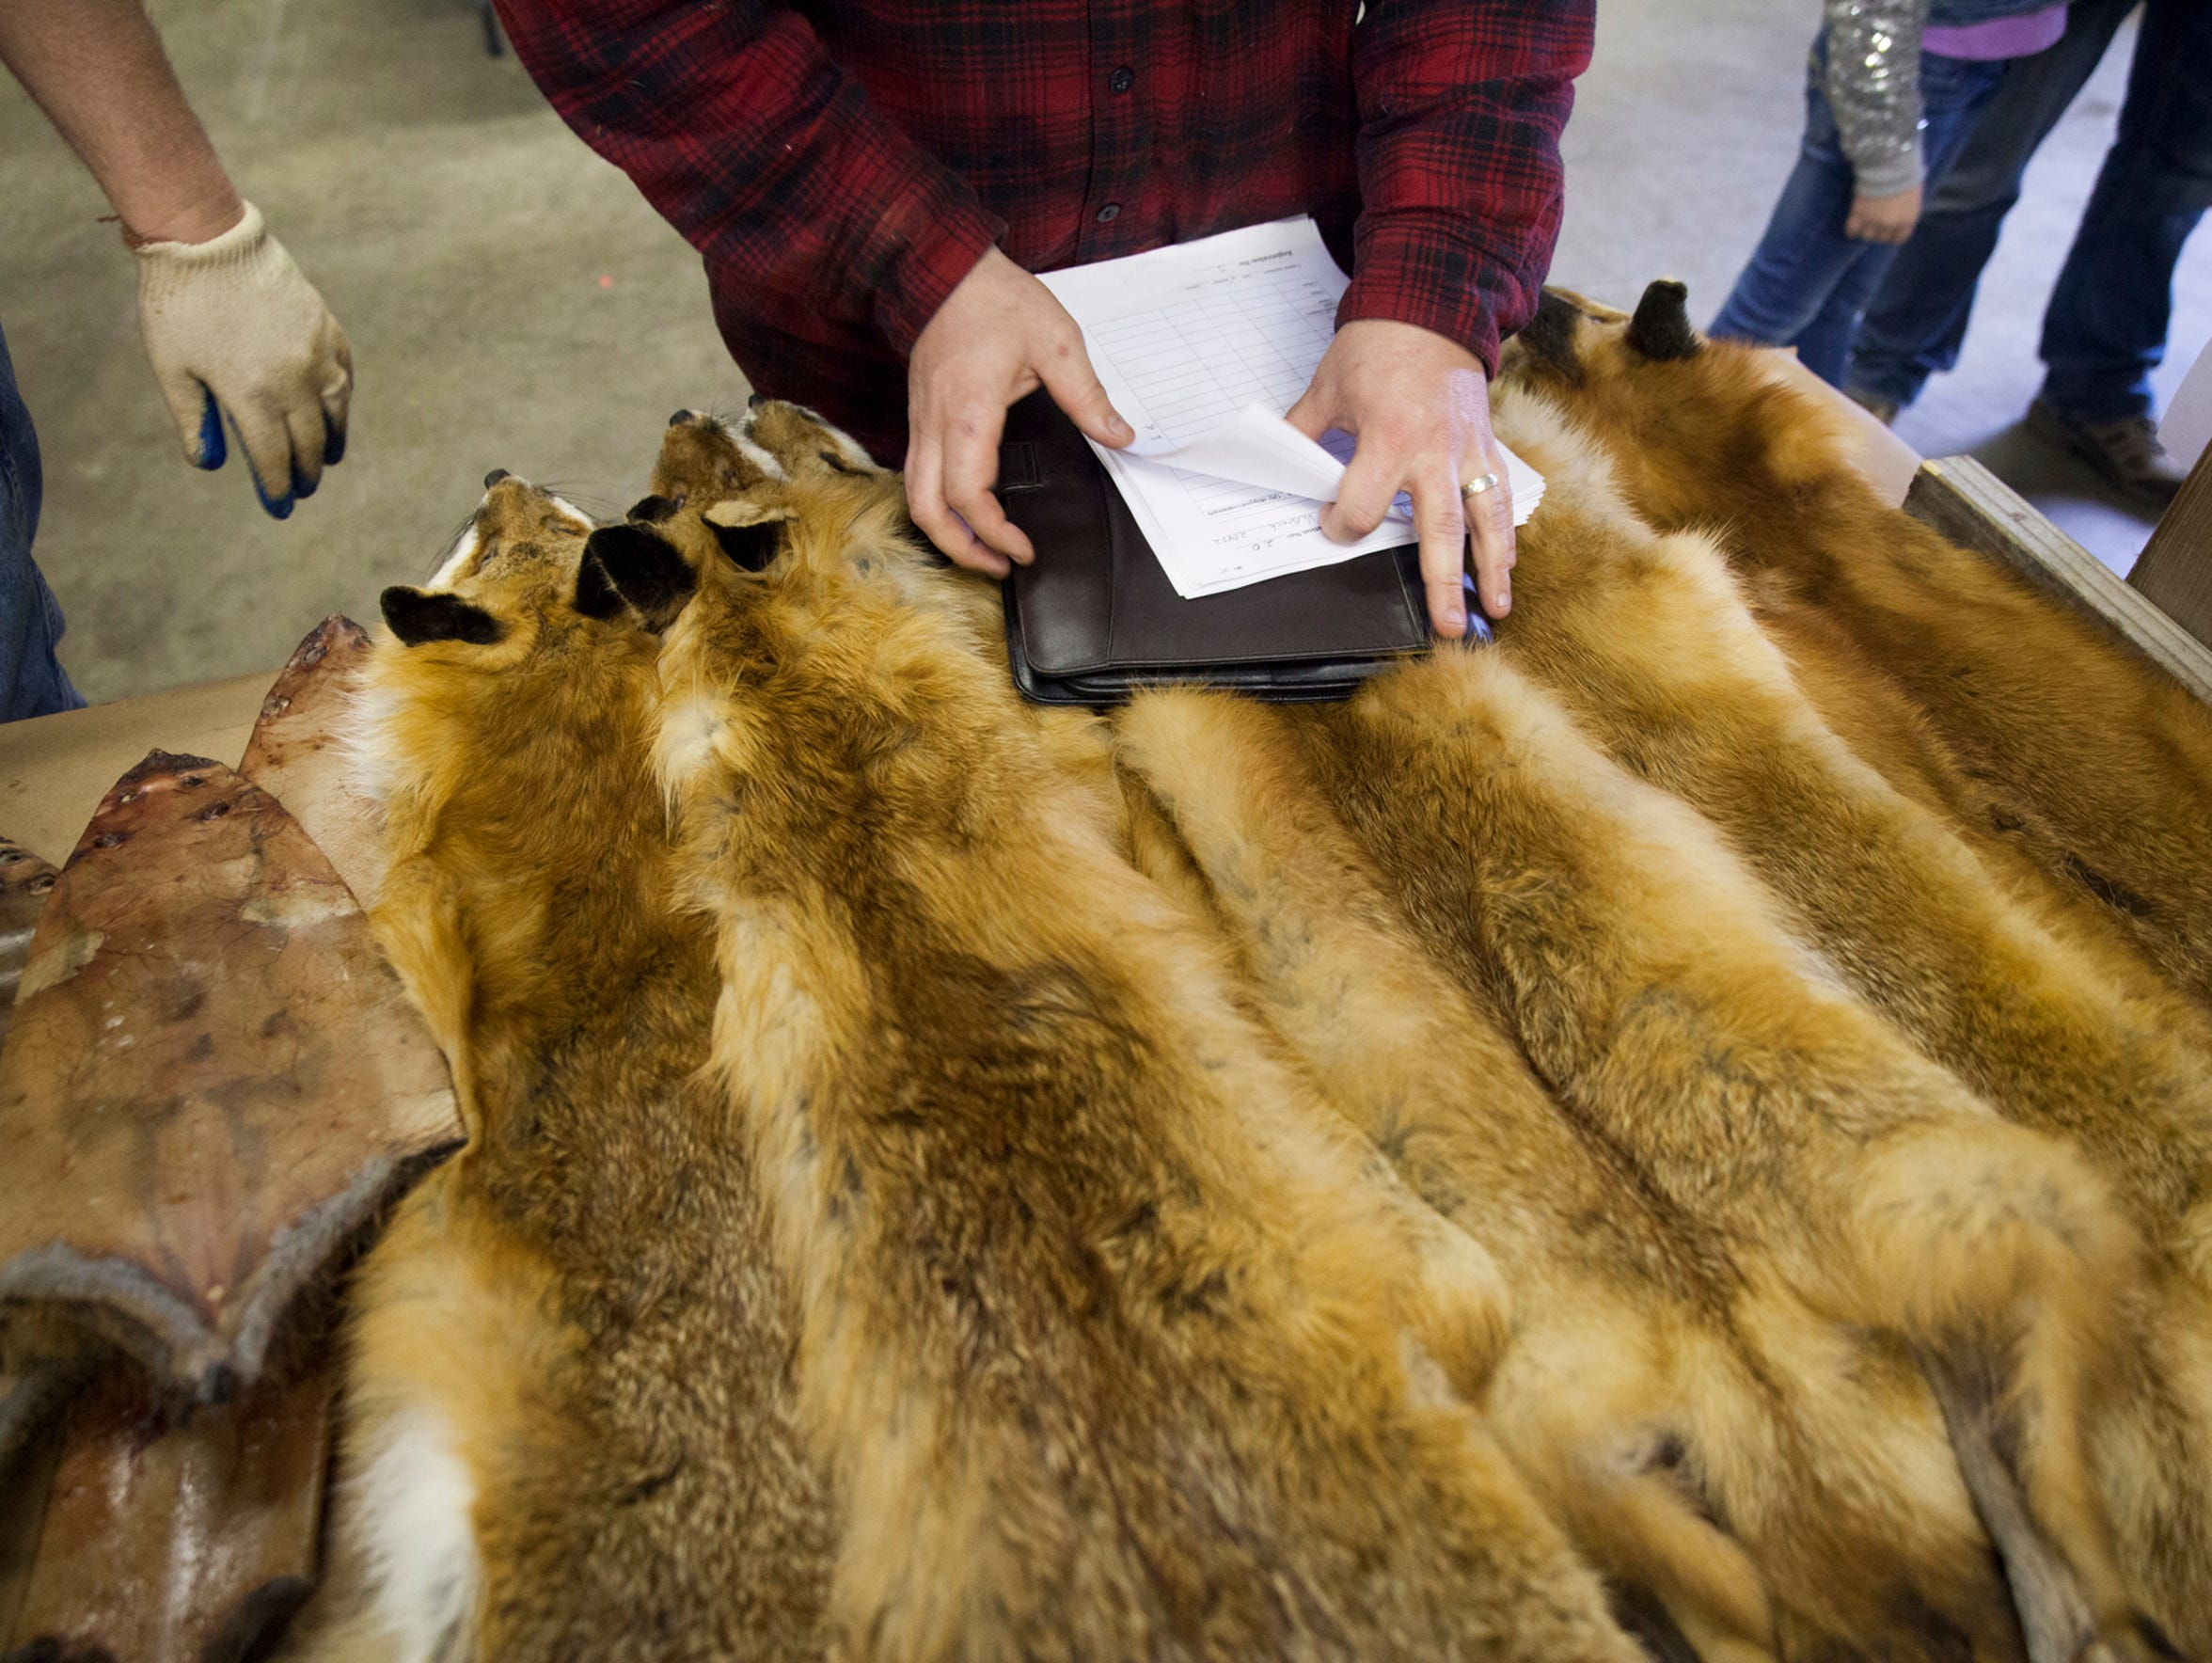 Brian Lacey, a fur buyer at the Virginia Trappers Association